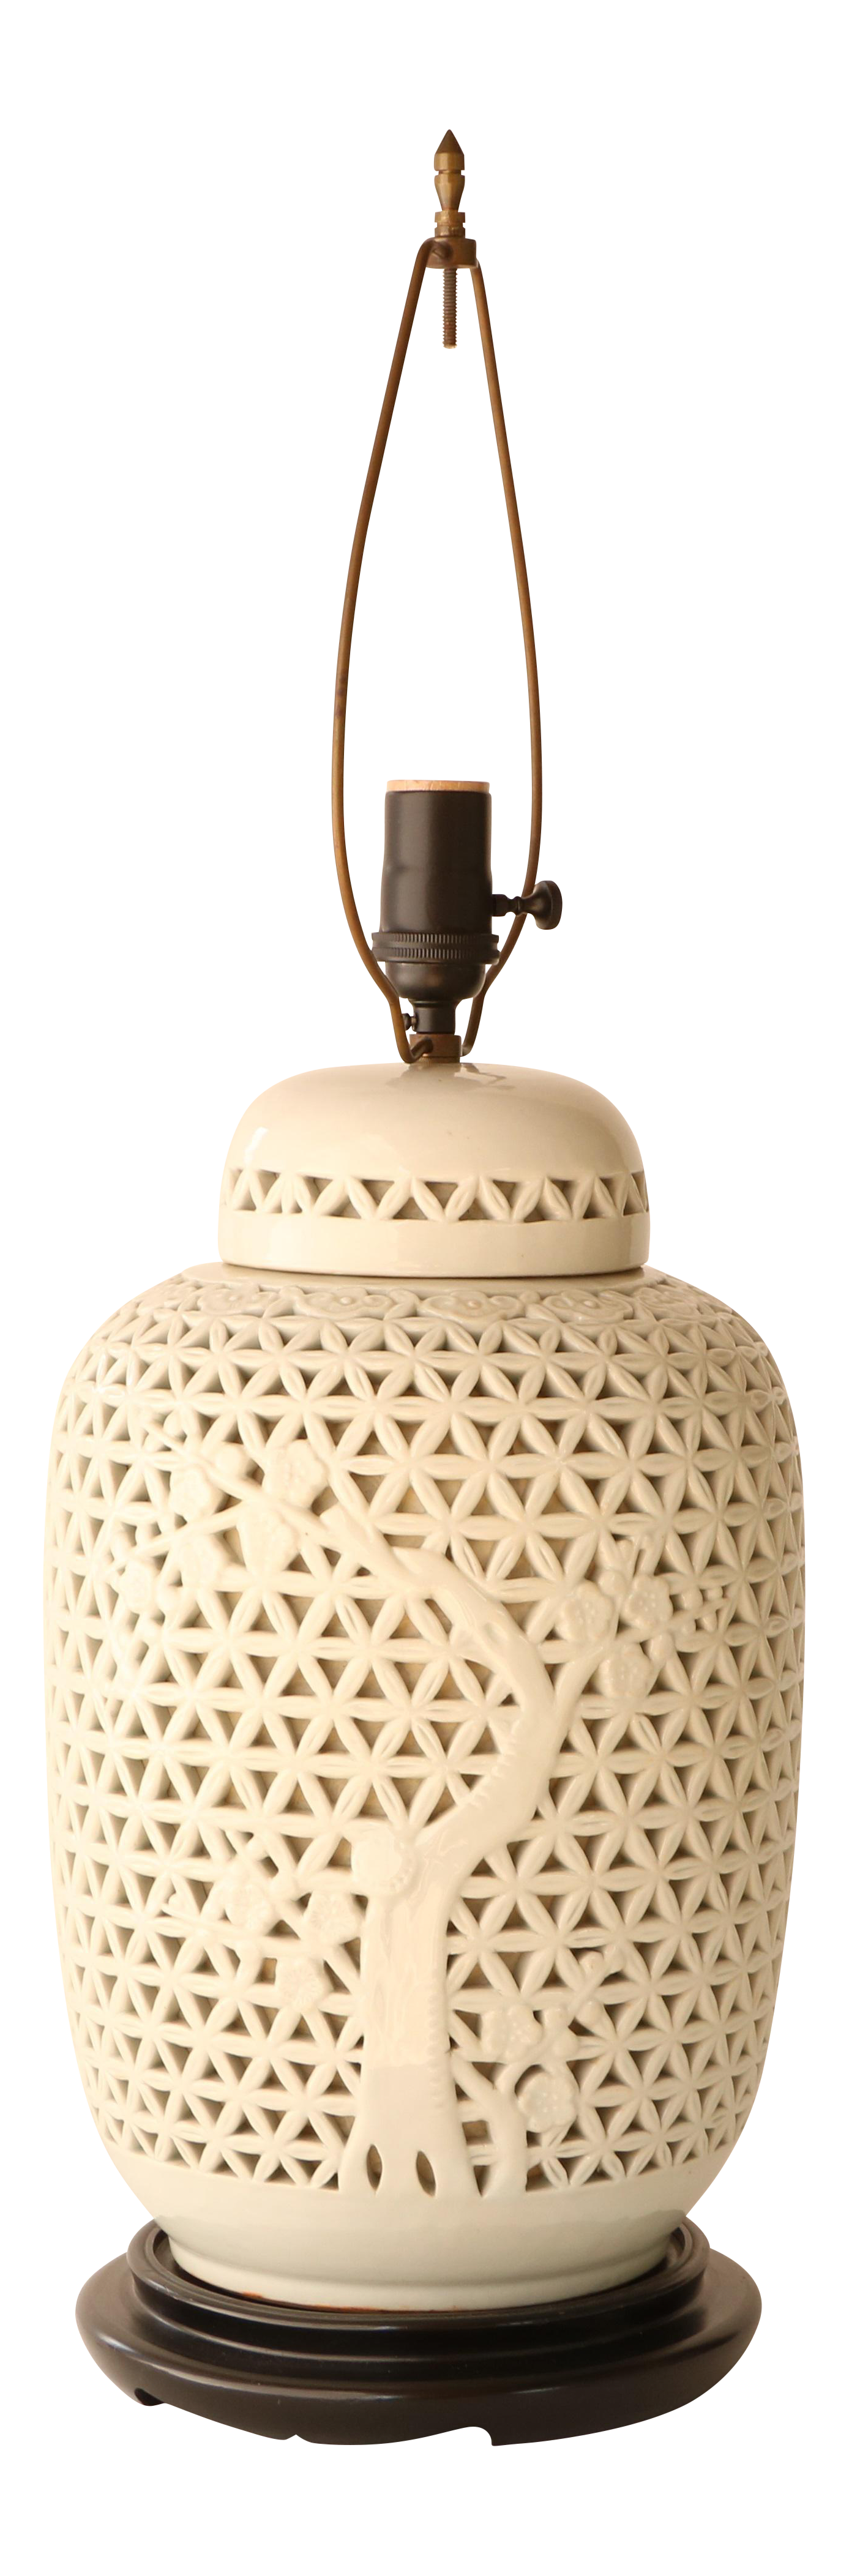 Reticulated porcelain blanc de chine table lamp chairish for Table de chine